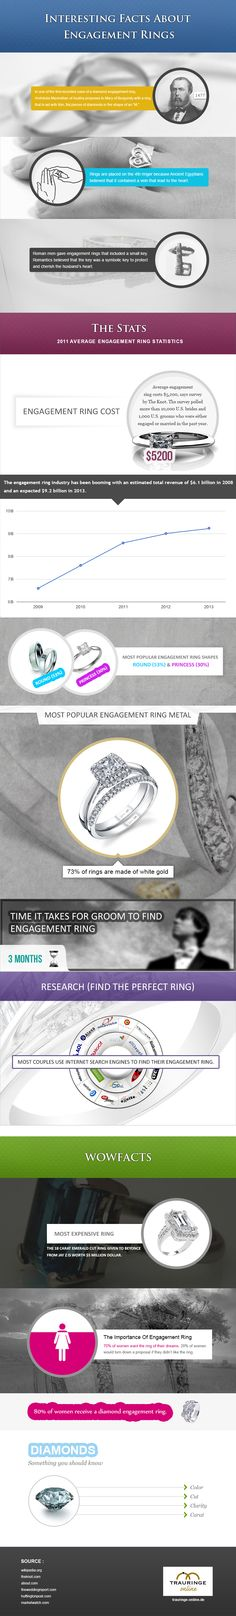 Interesting facts you didn't know about engagement rings. Did you know that in 1477 the first diamond engagement ring was given by Archduke Maximillia